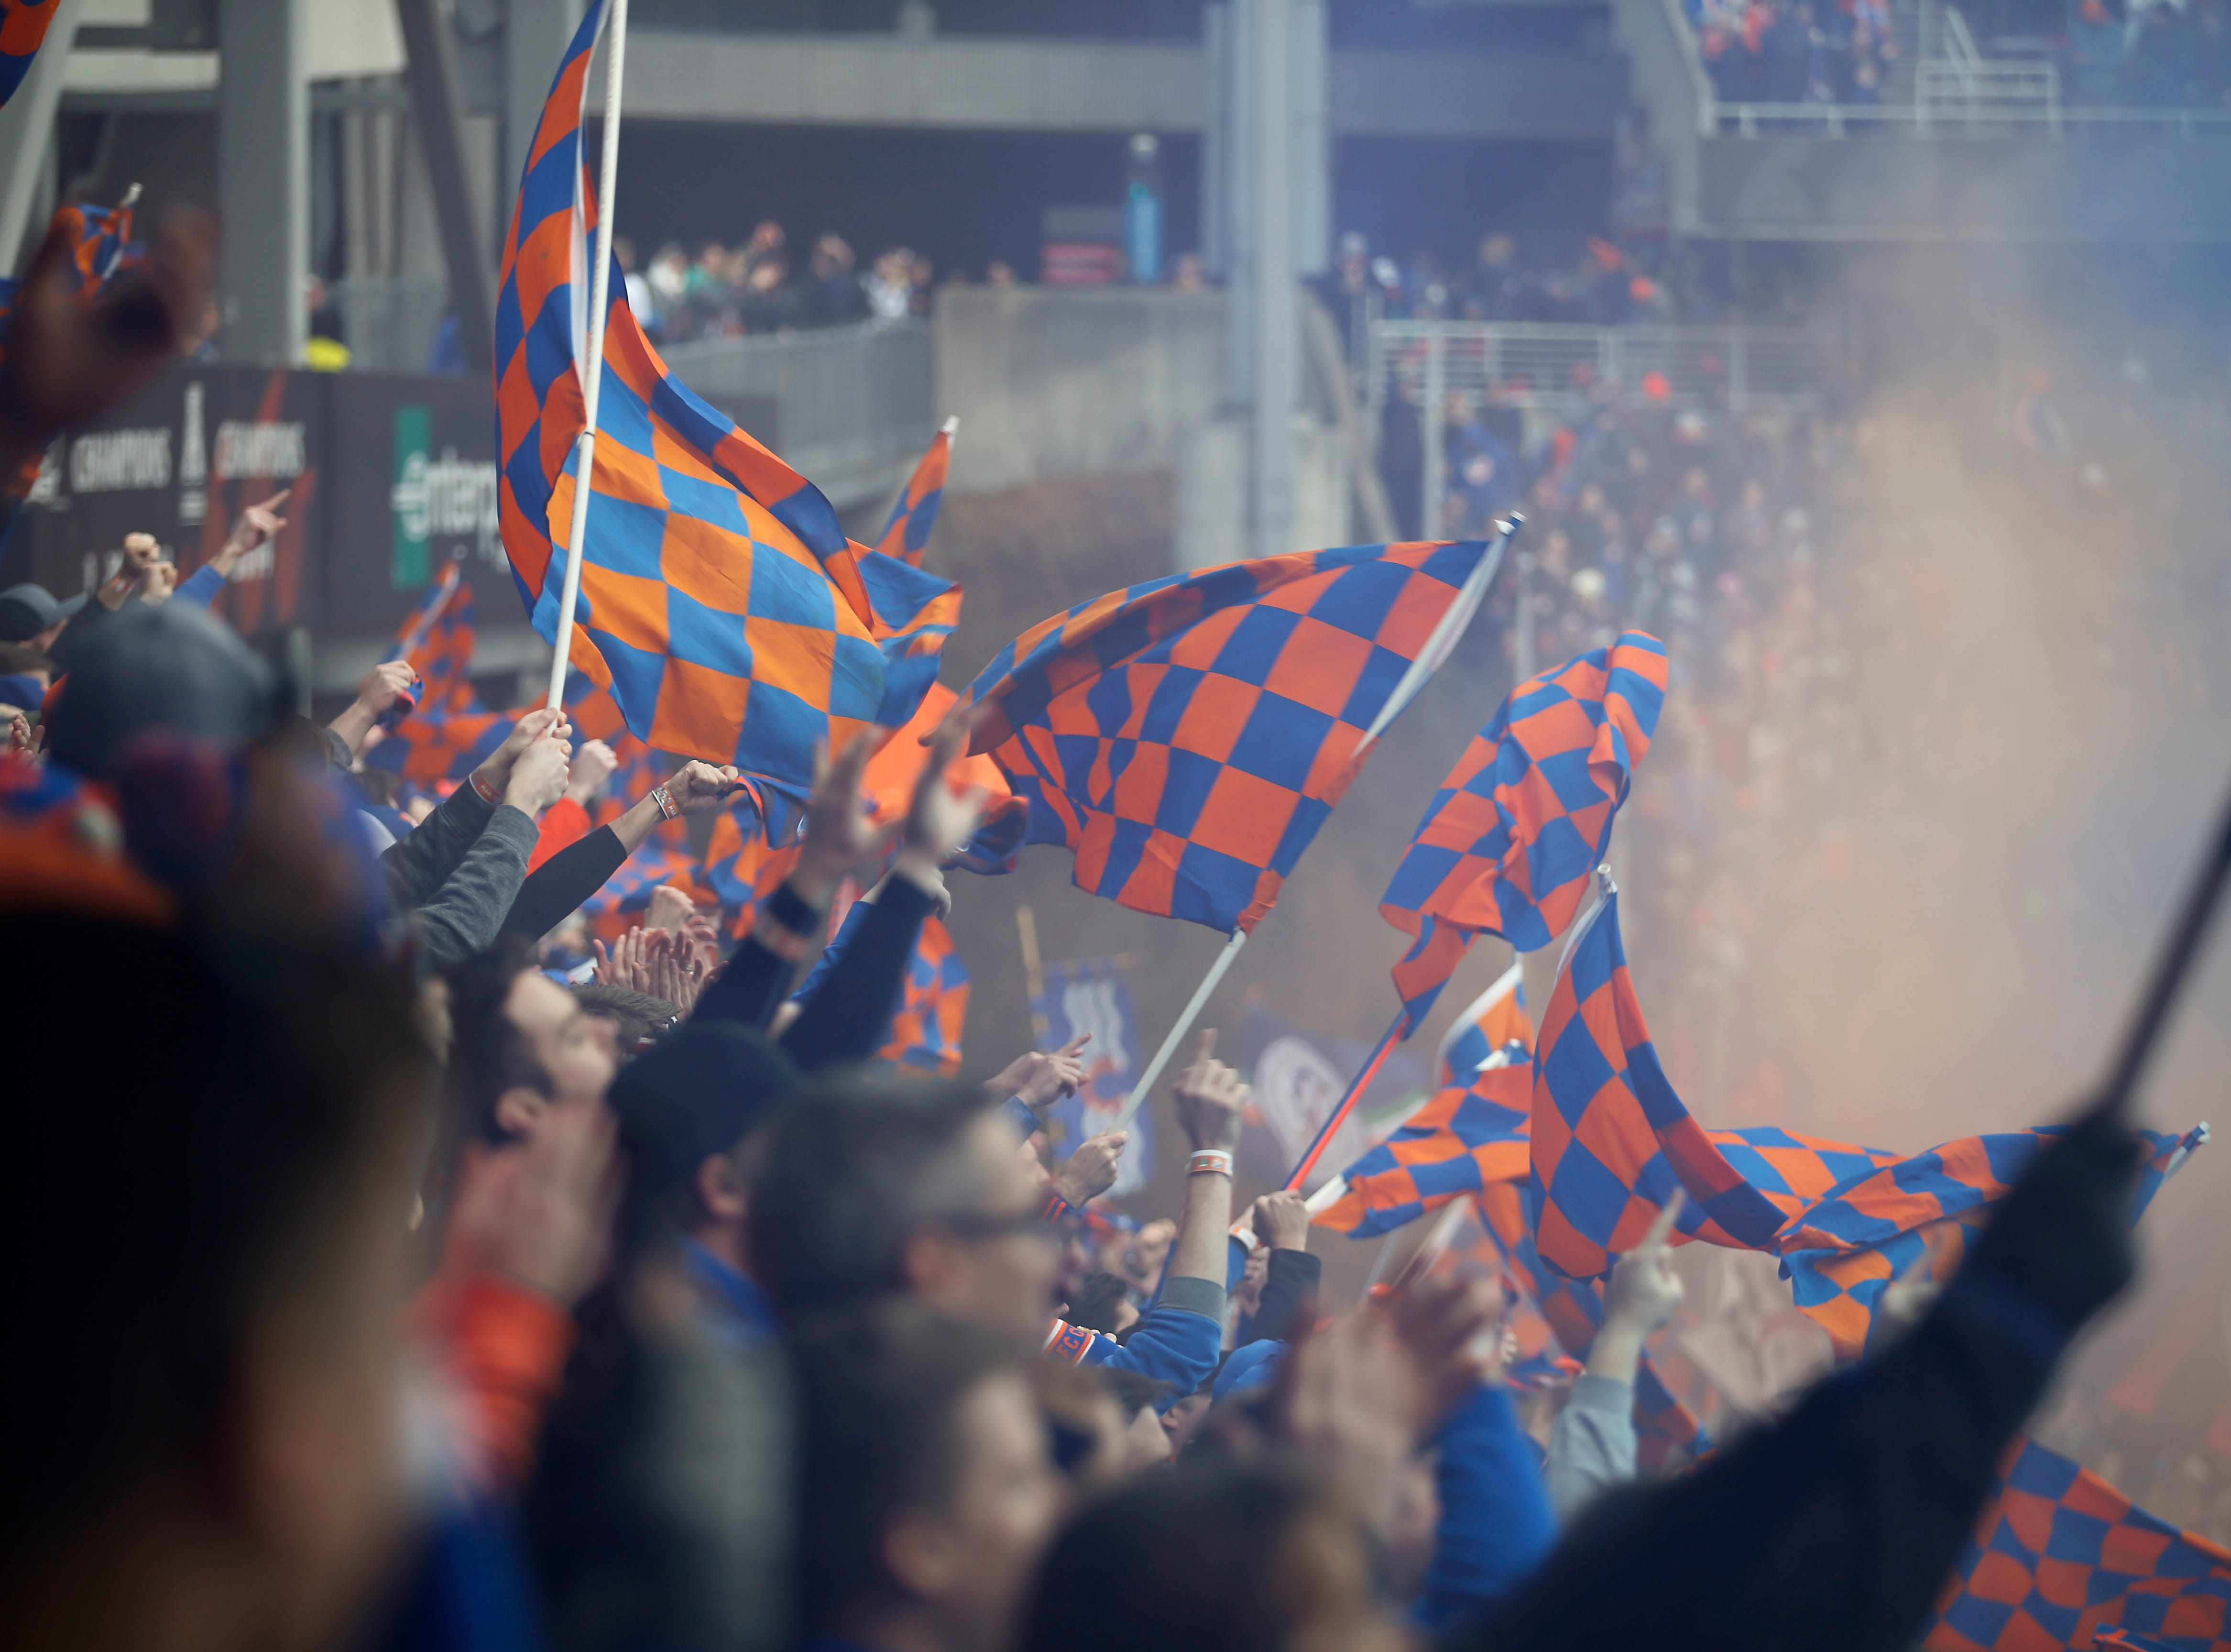 The Bailey celebrates the first home goal for FC Cincinnati as an MLS team in the first half of the MLS match between FC Cincinnati and the Portland Timbers at Nippert Stadium in Cincinnati on Sunday, March 17, 2019. FC Cincinnati led 1-0 at halftime.